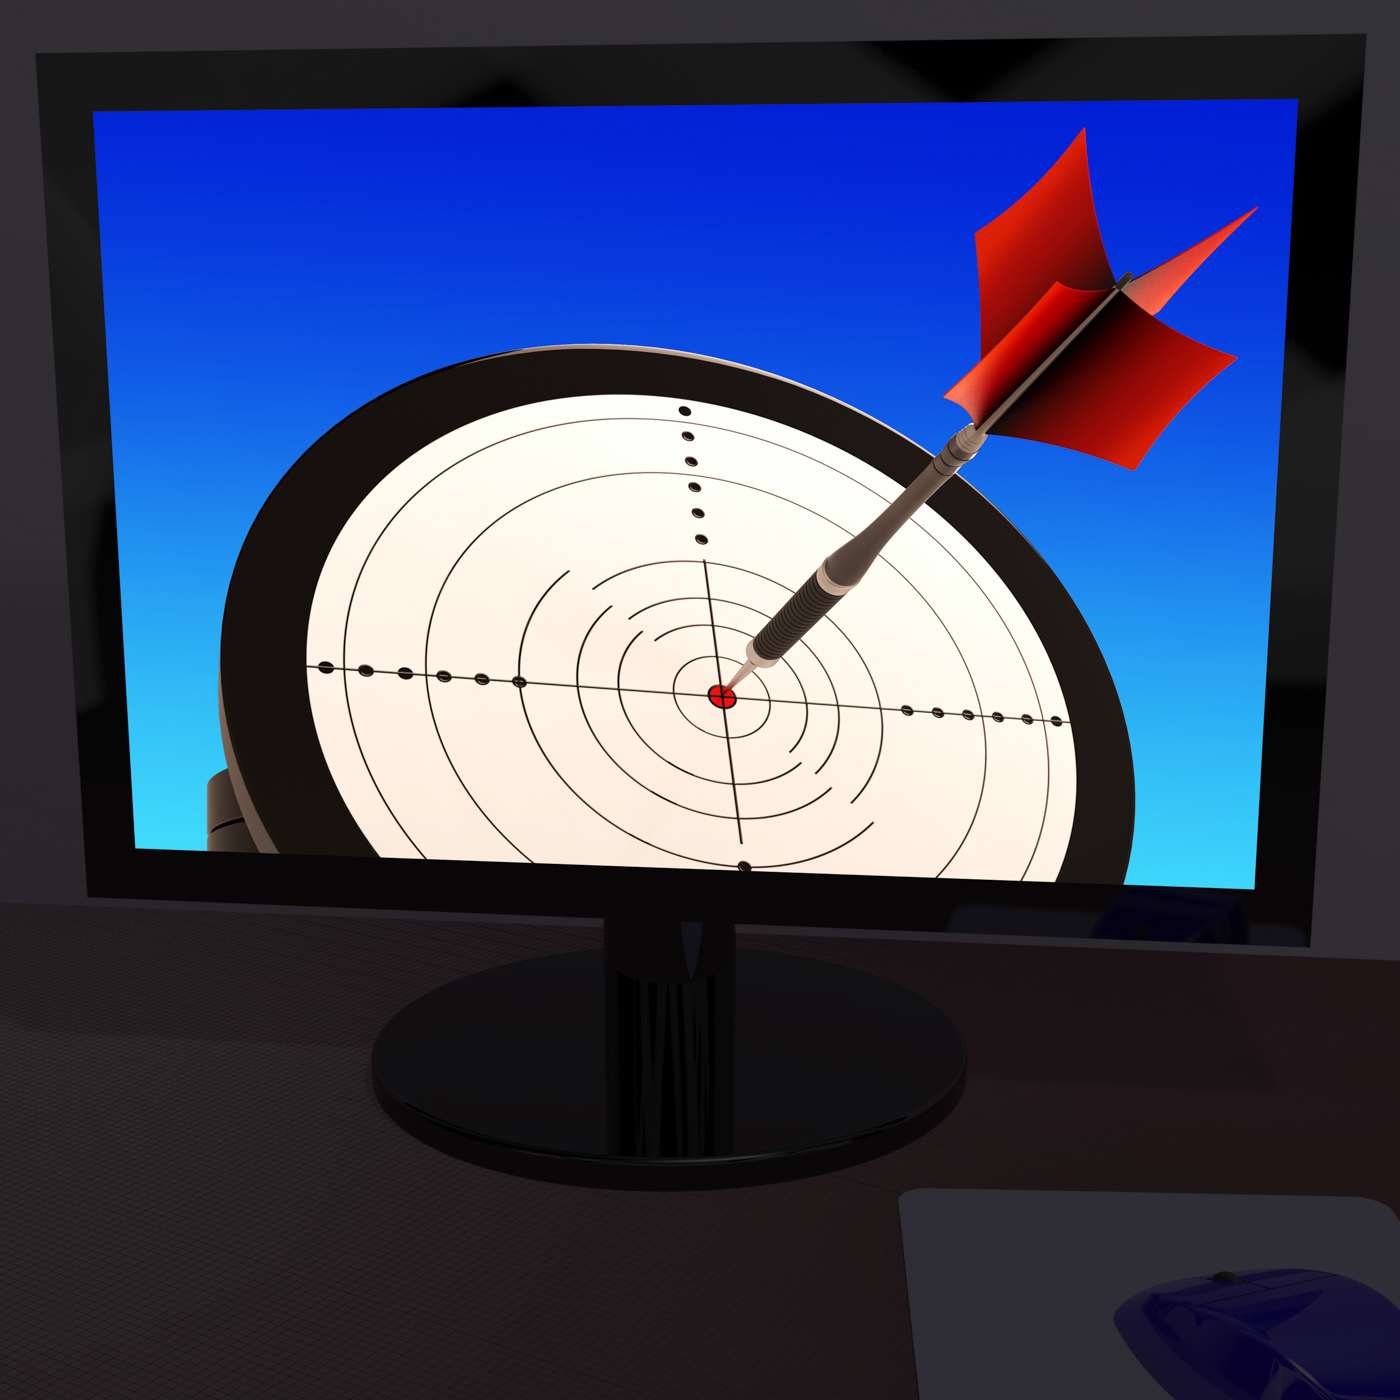 Arrow aiming on monitor showing performance photo